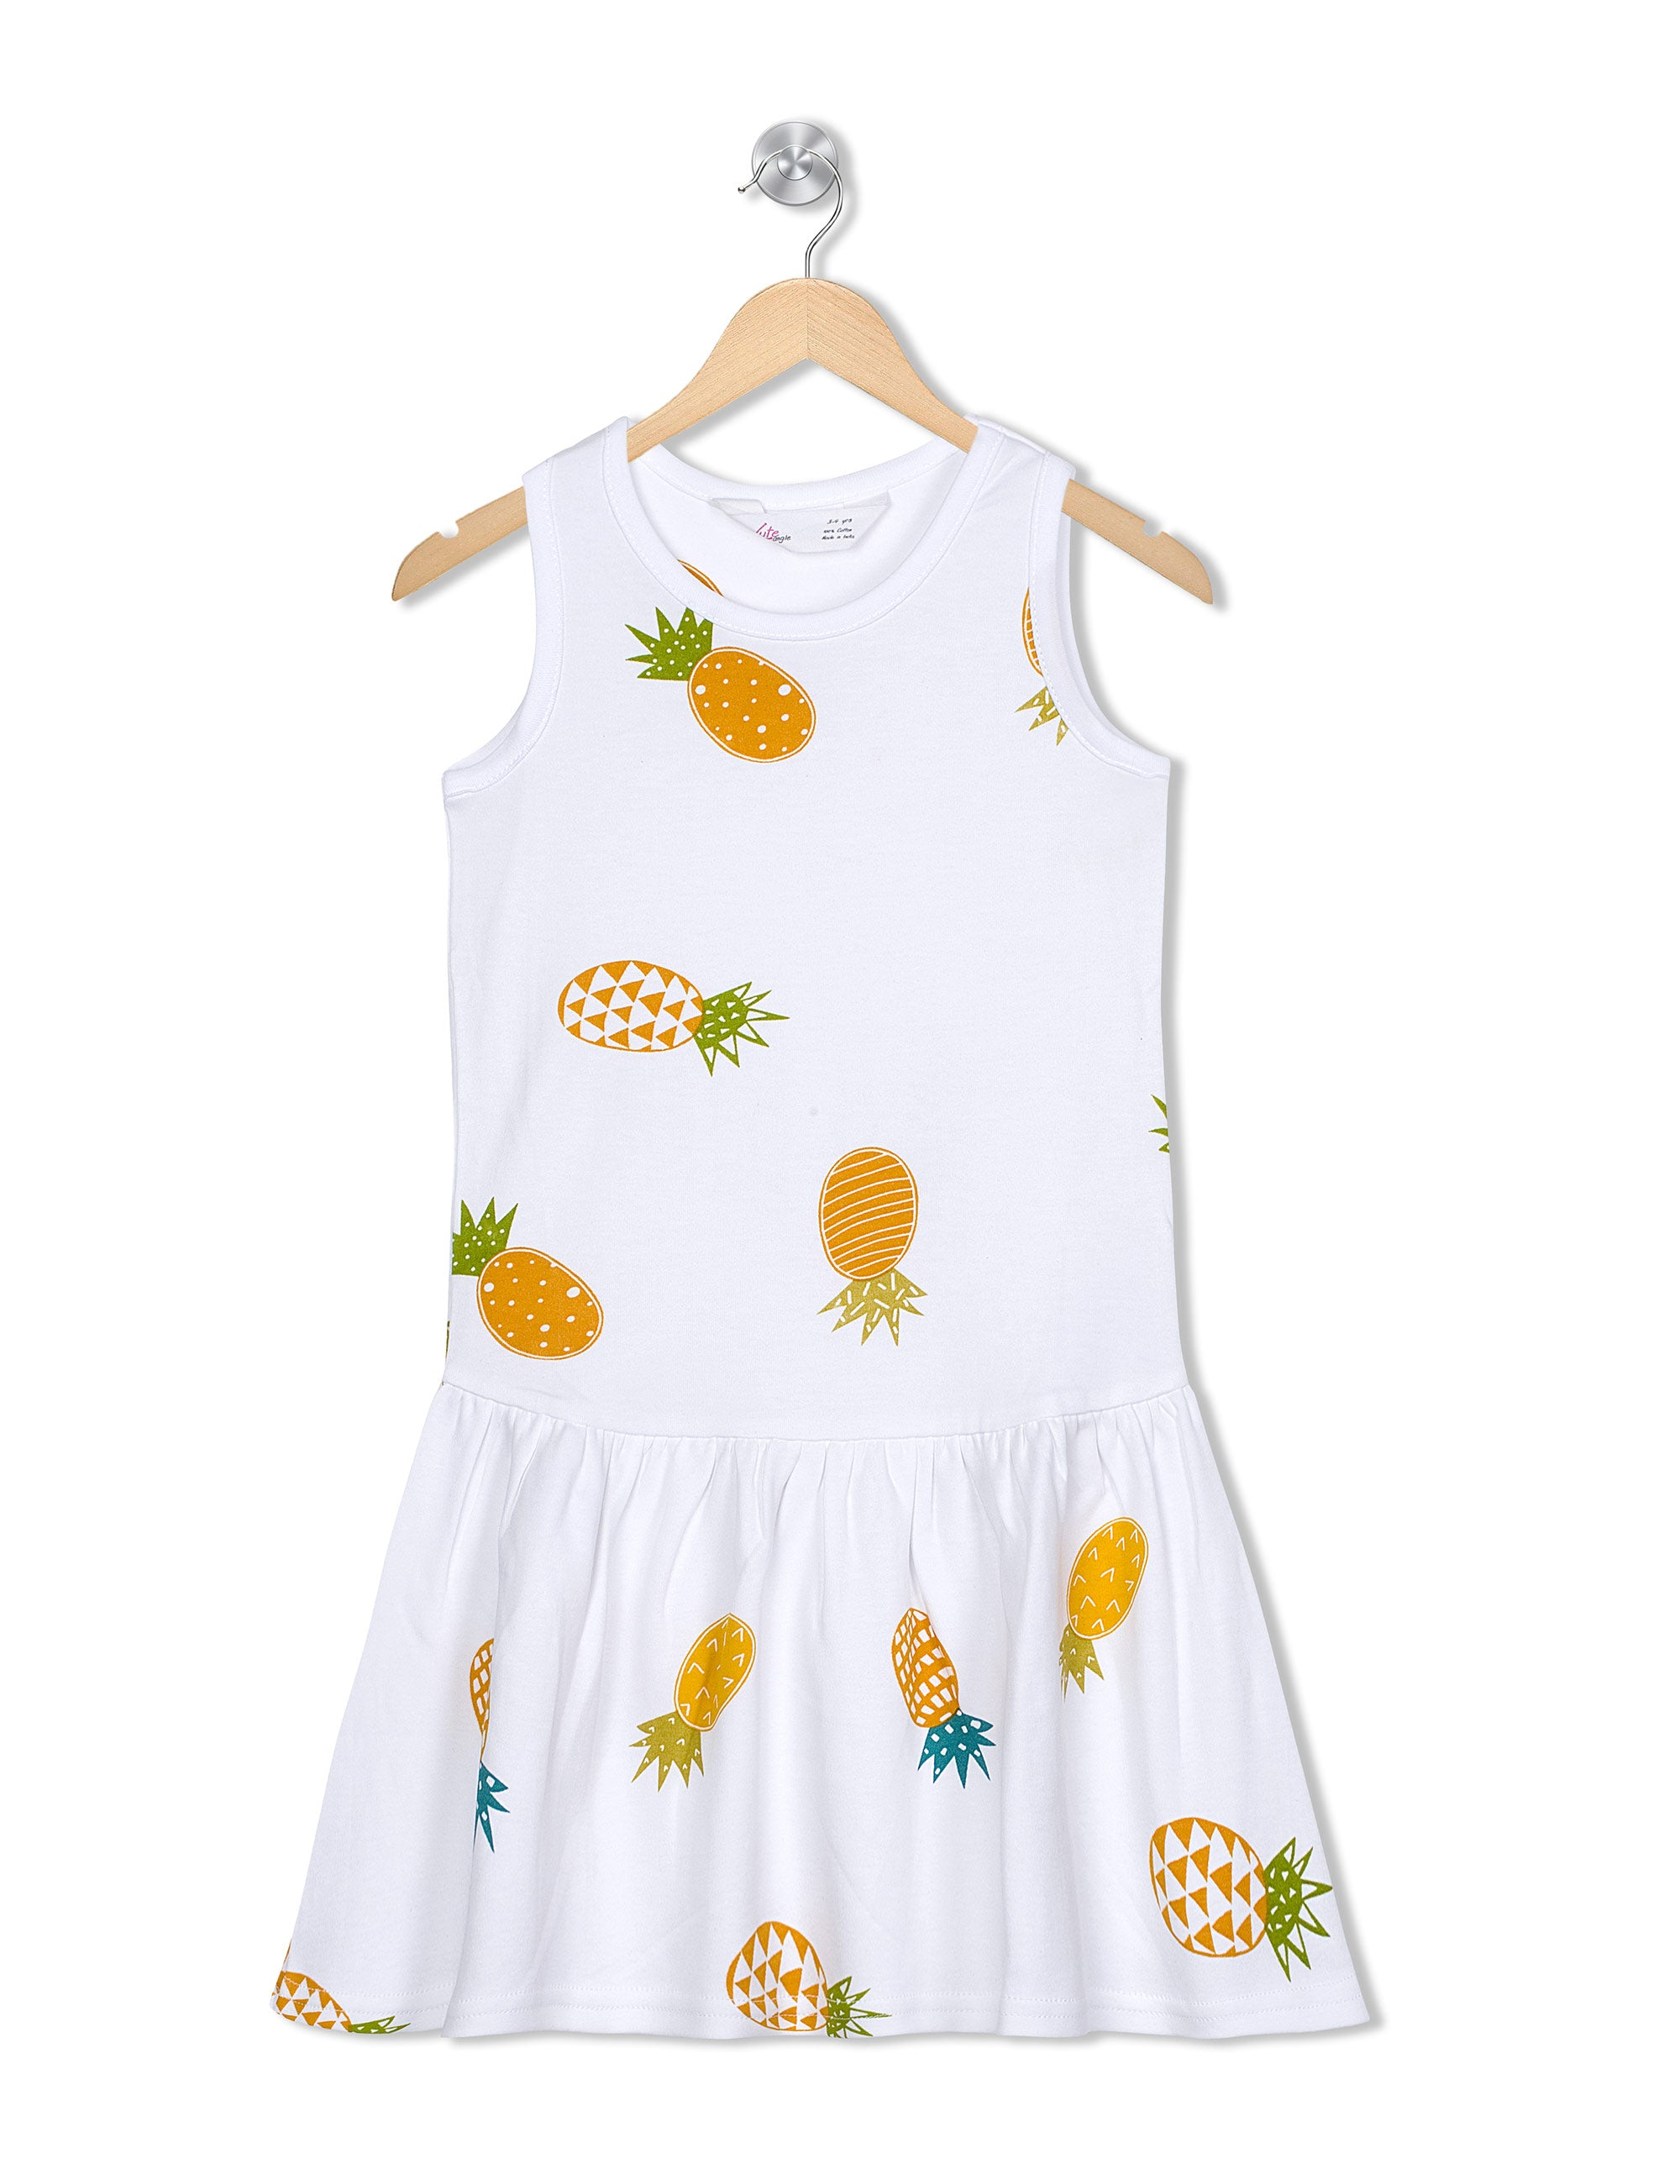 Perky Pineapple frock in White & Yellow Colour for Girls